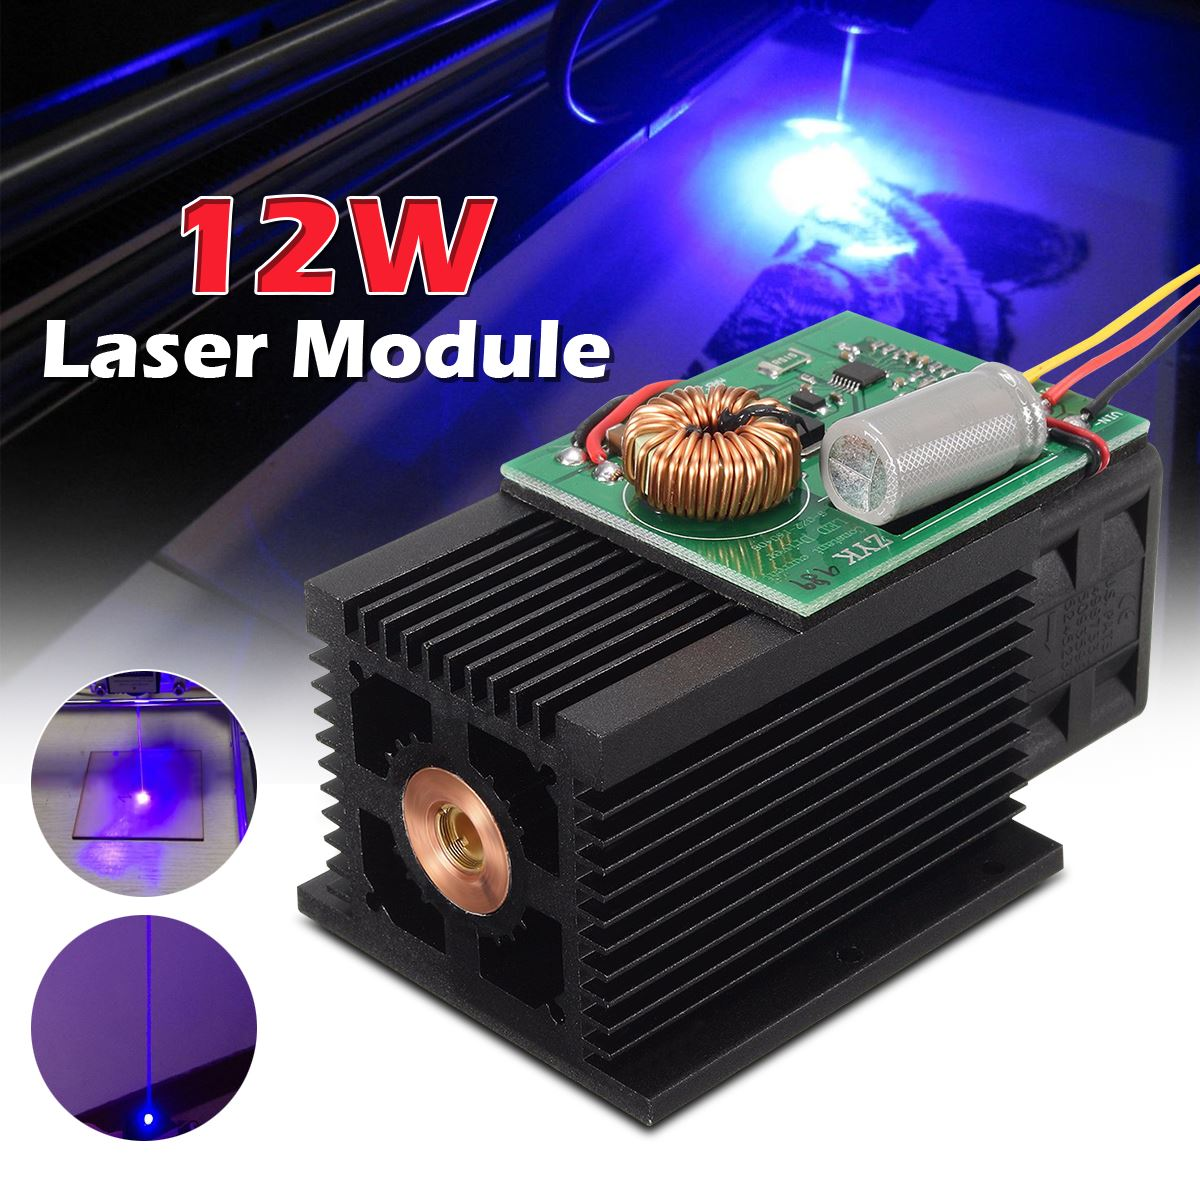 450nm 12W Blue Light Laser Module TTL Blue Laser Head DC 12V High Power for Mini DIY Metal Wood Engraving Cutter Machine